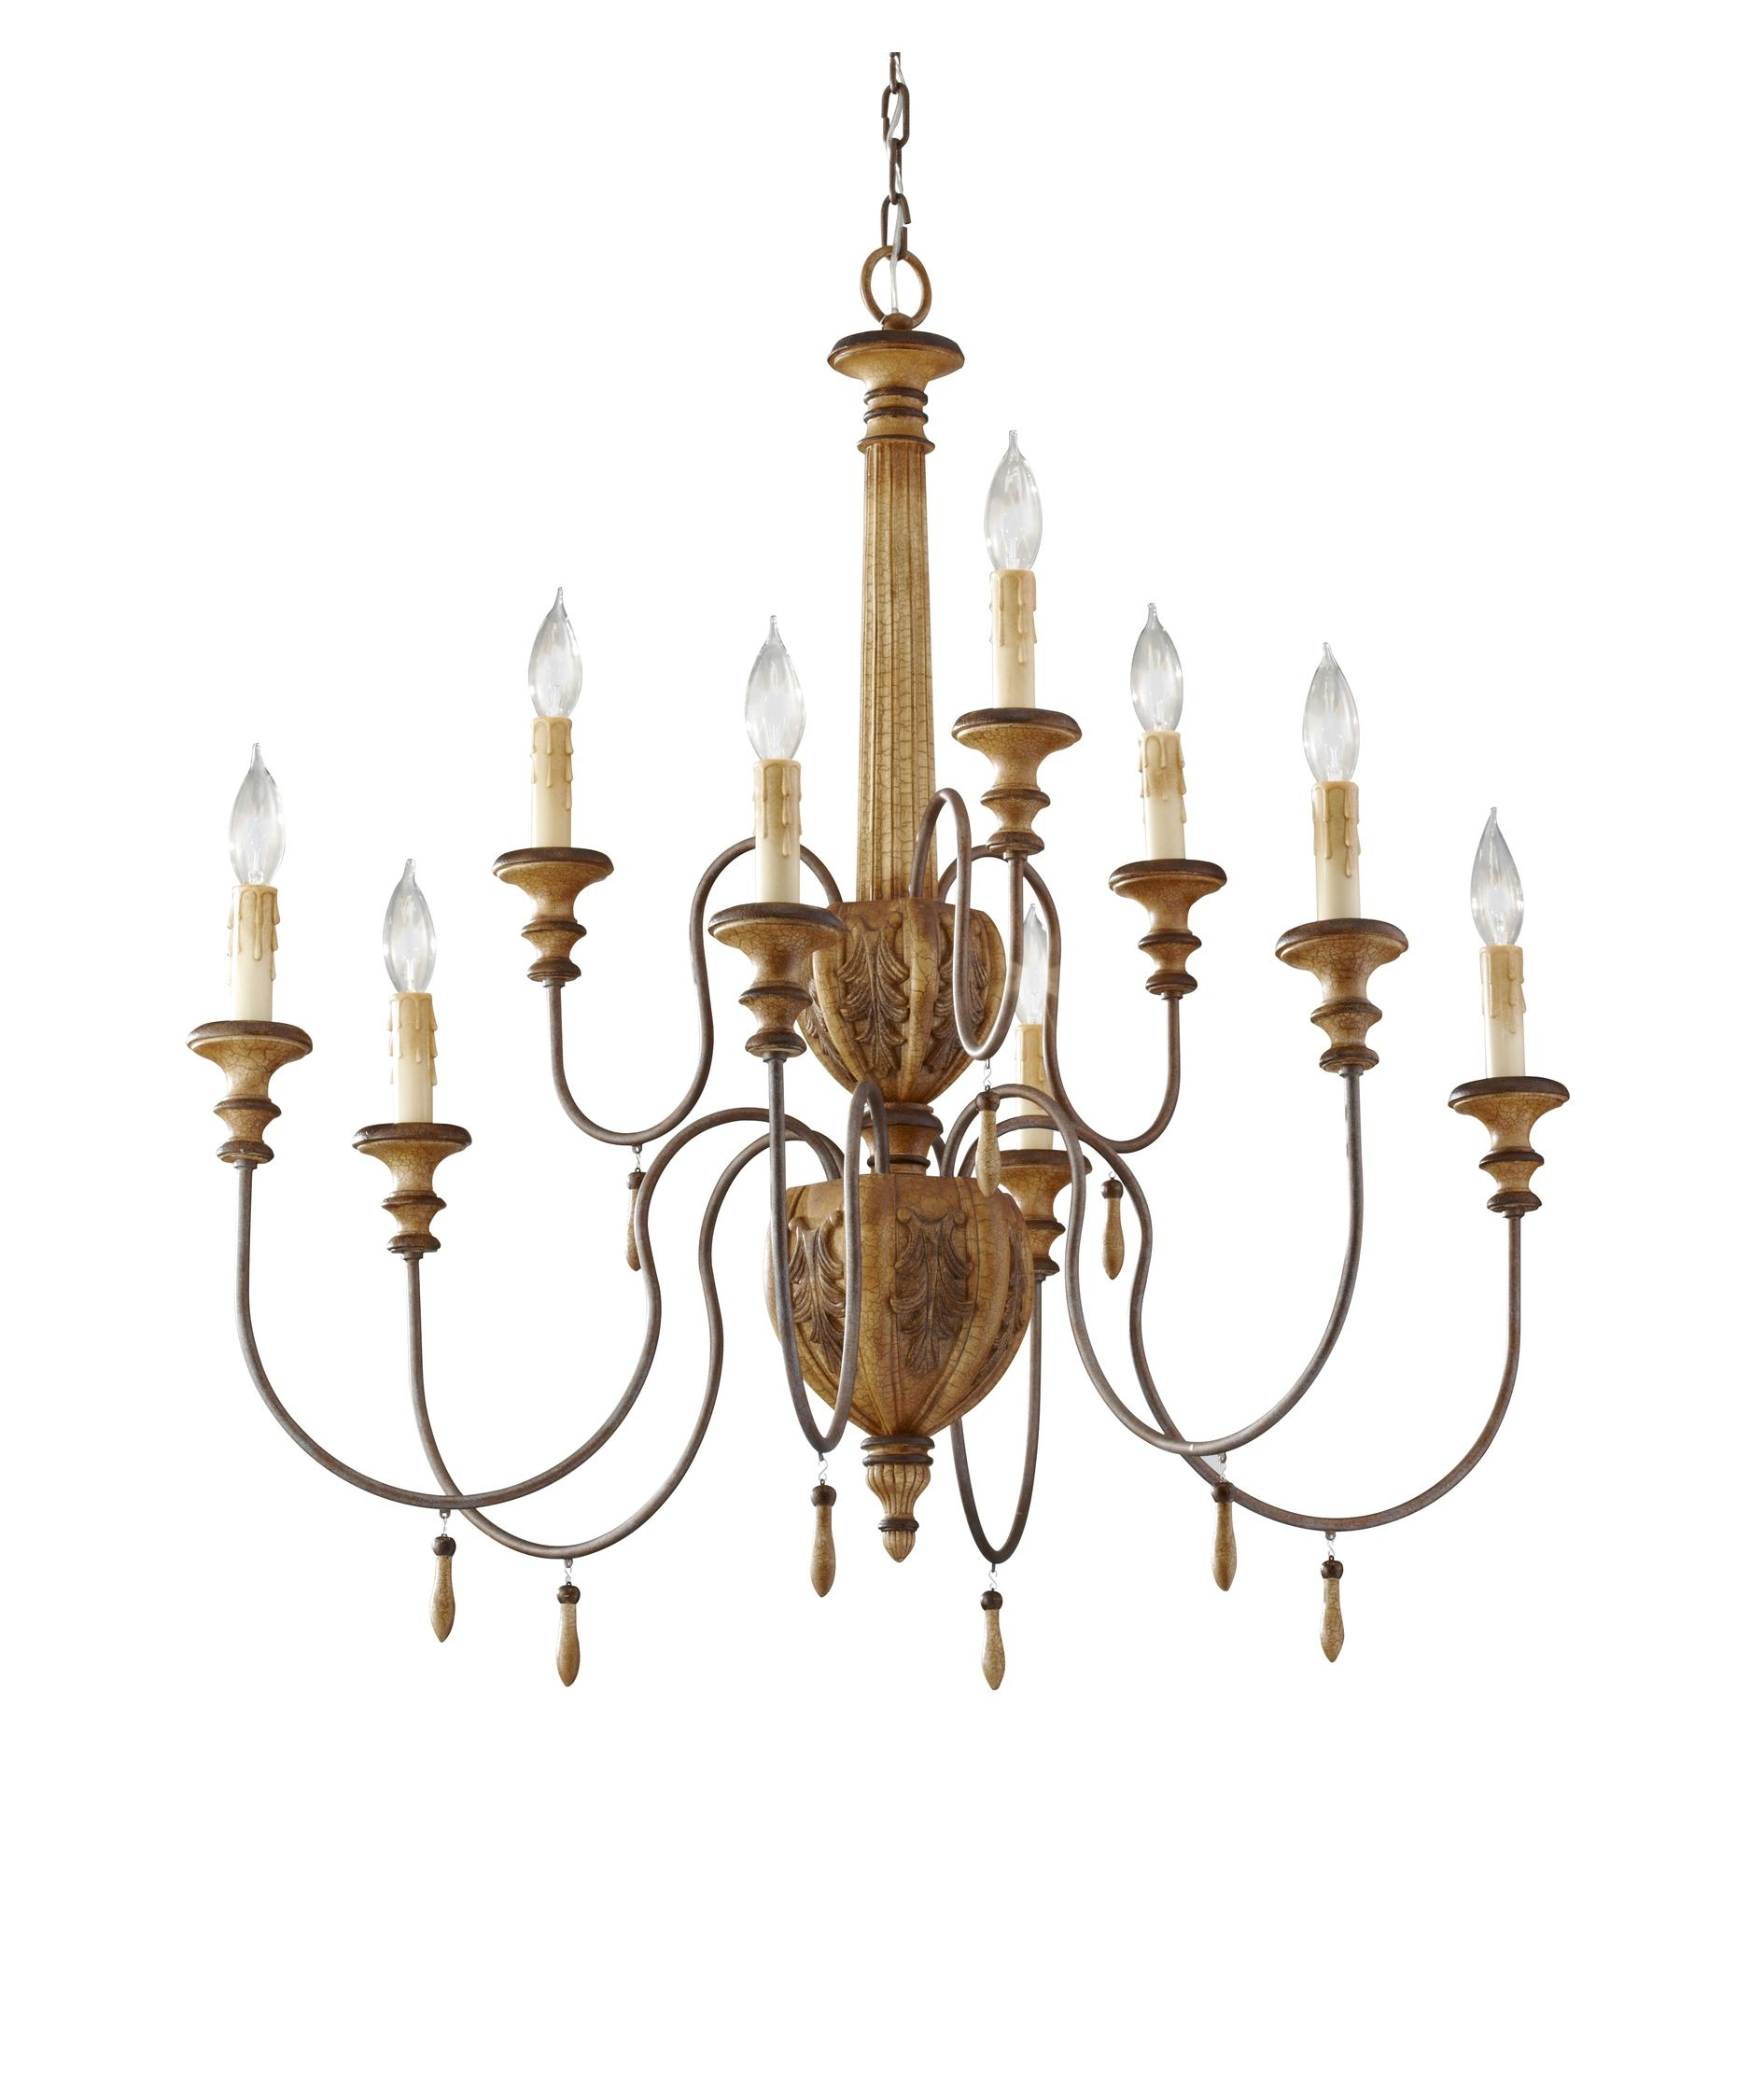 Murray Feiss F2734 63 Annabelle 32 Inch Wide 9 Light Chandelier Intended For Feiss Chandeliers (Image 22 of 25)